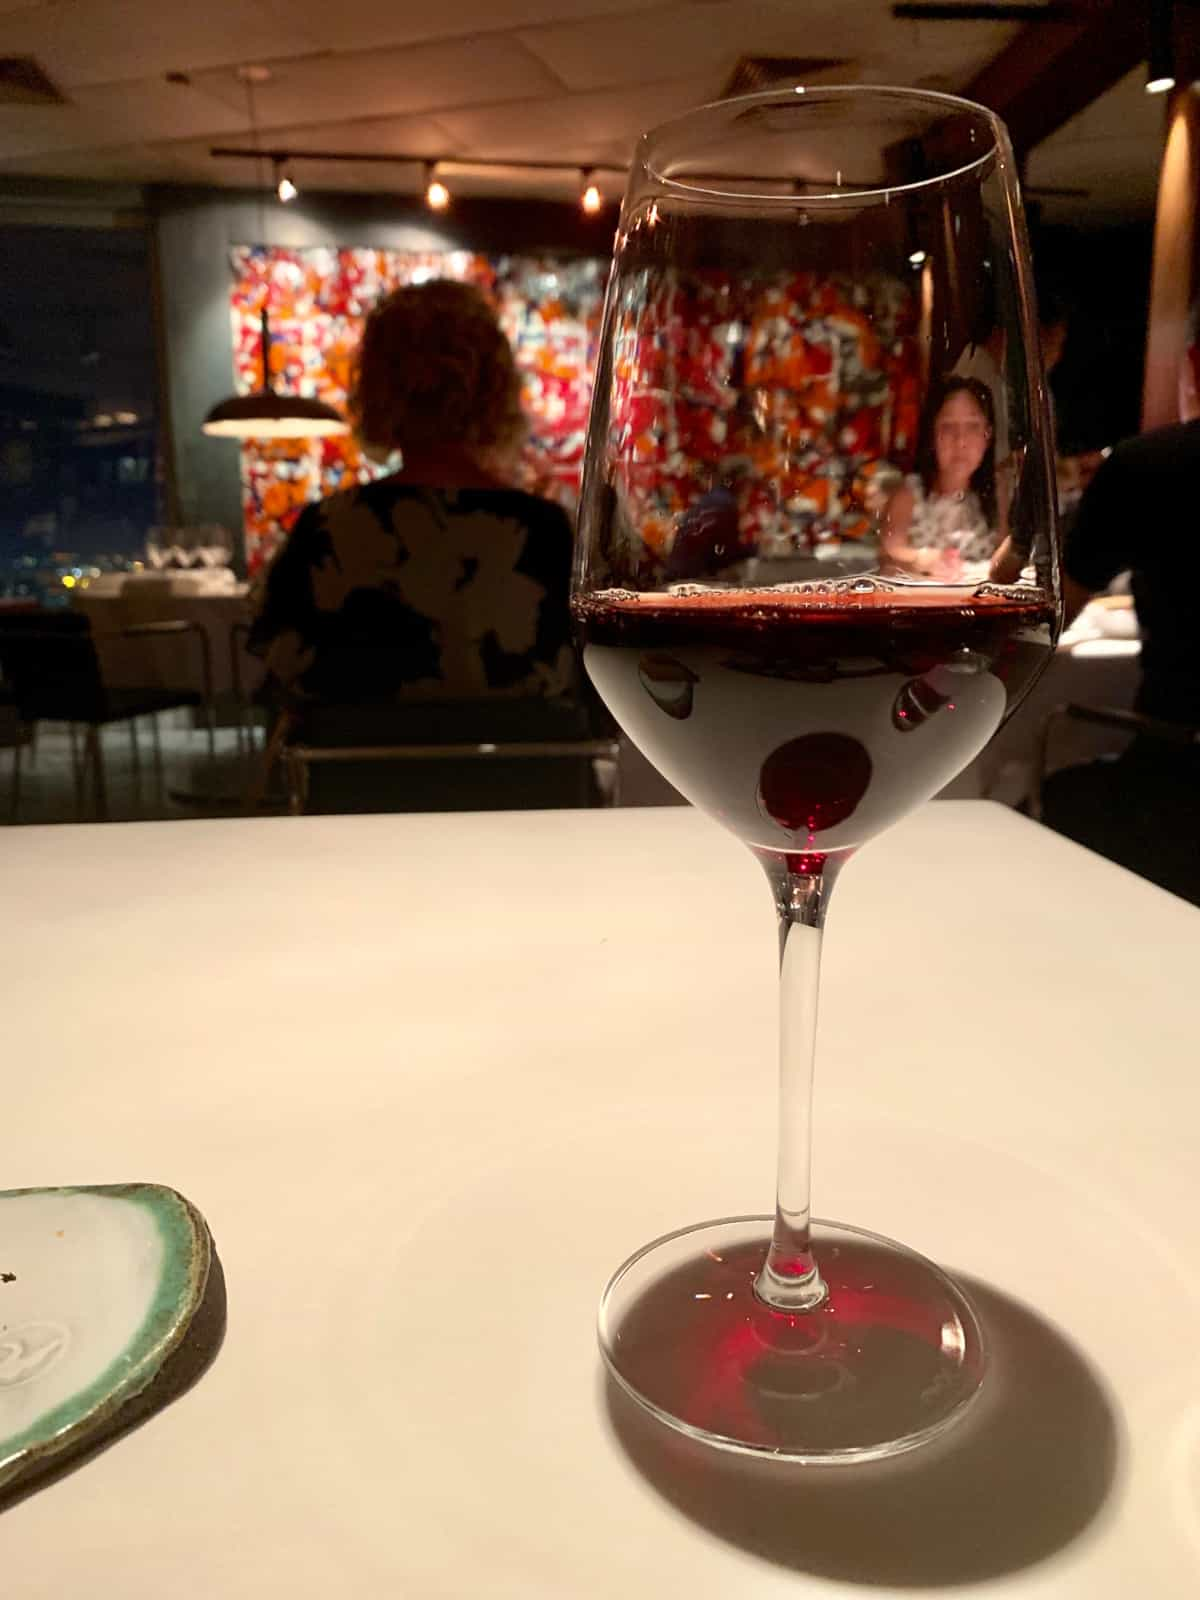 Eating at Istanbul's Mikla - a World's Top 100 Restaurant | I had a birthday dinner at Mikla in Istanbul, which sits on the World's Top 100 Restaurants list. It's a super interesting new Anatolian cuisine restaurant and a great option for a special dinner in Istanbul. #istanbul #turkey